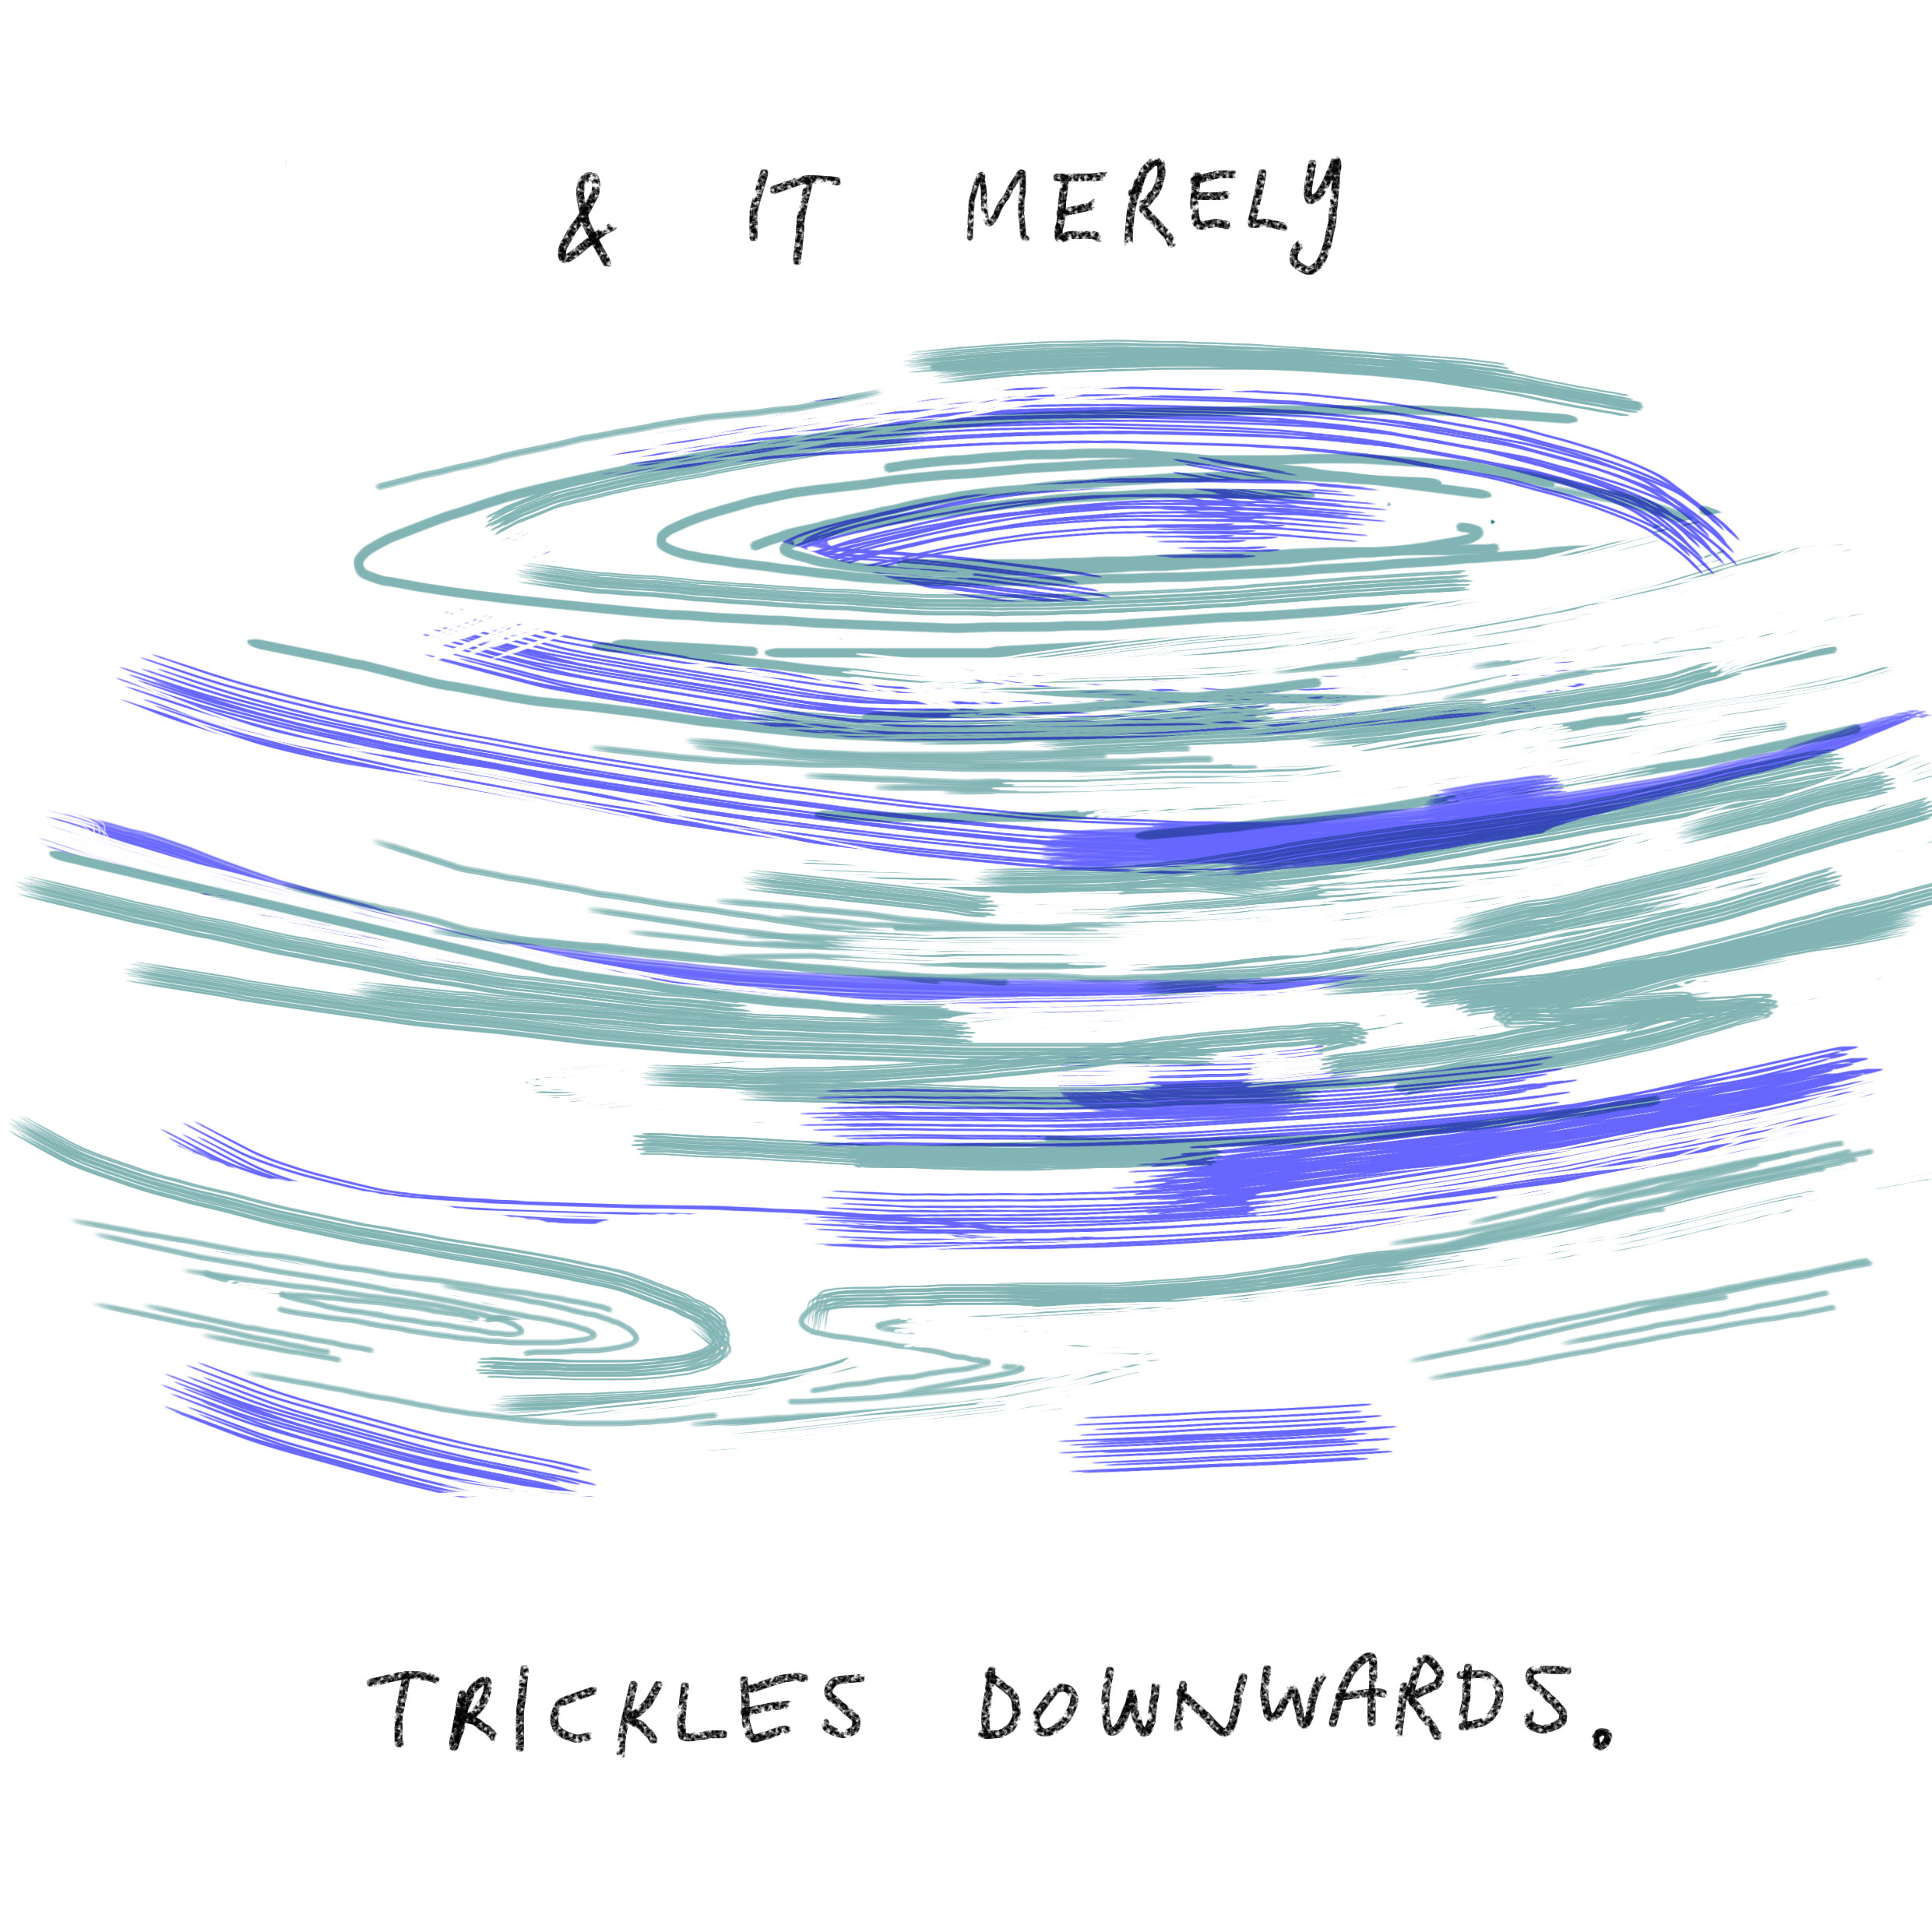 'And it merely trickles downwards.'